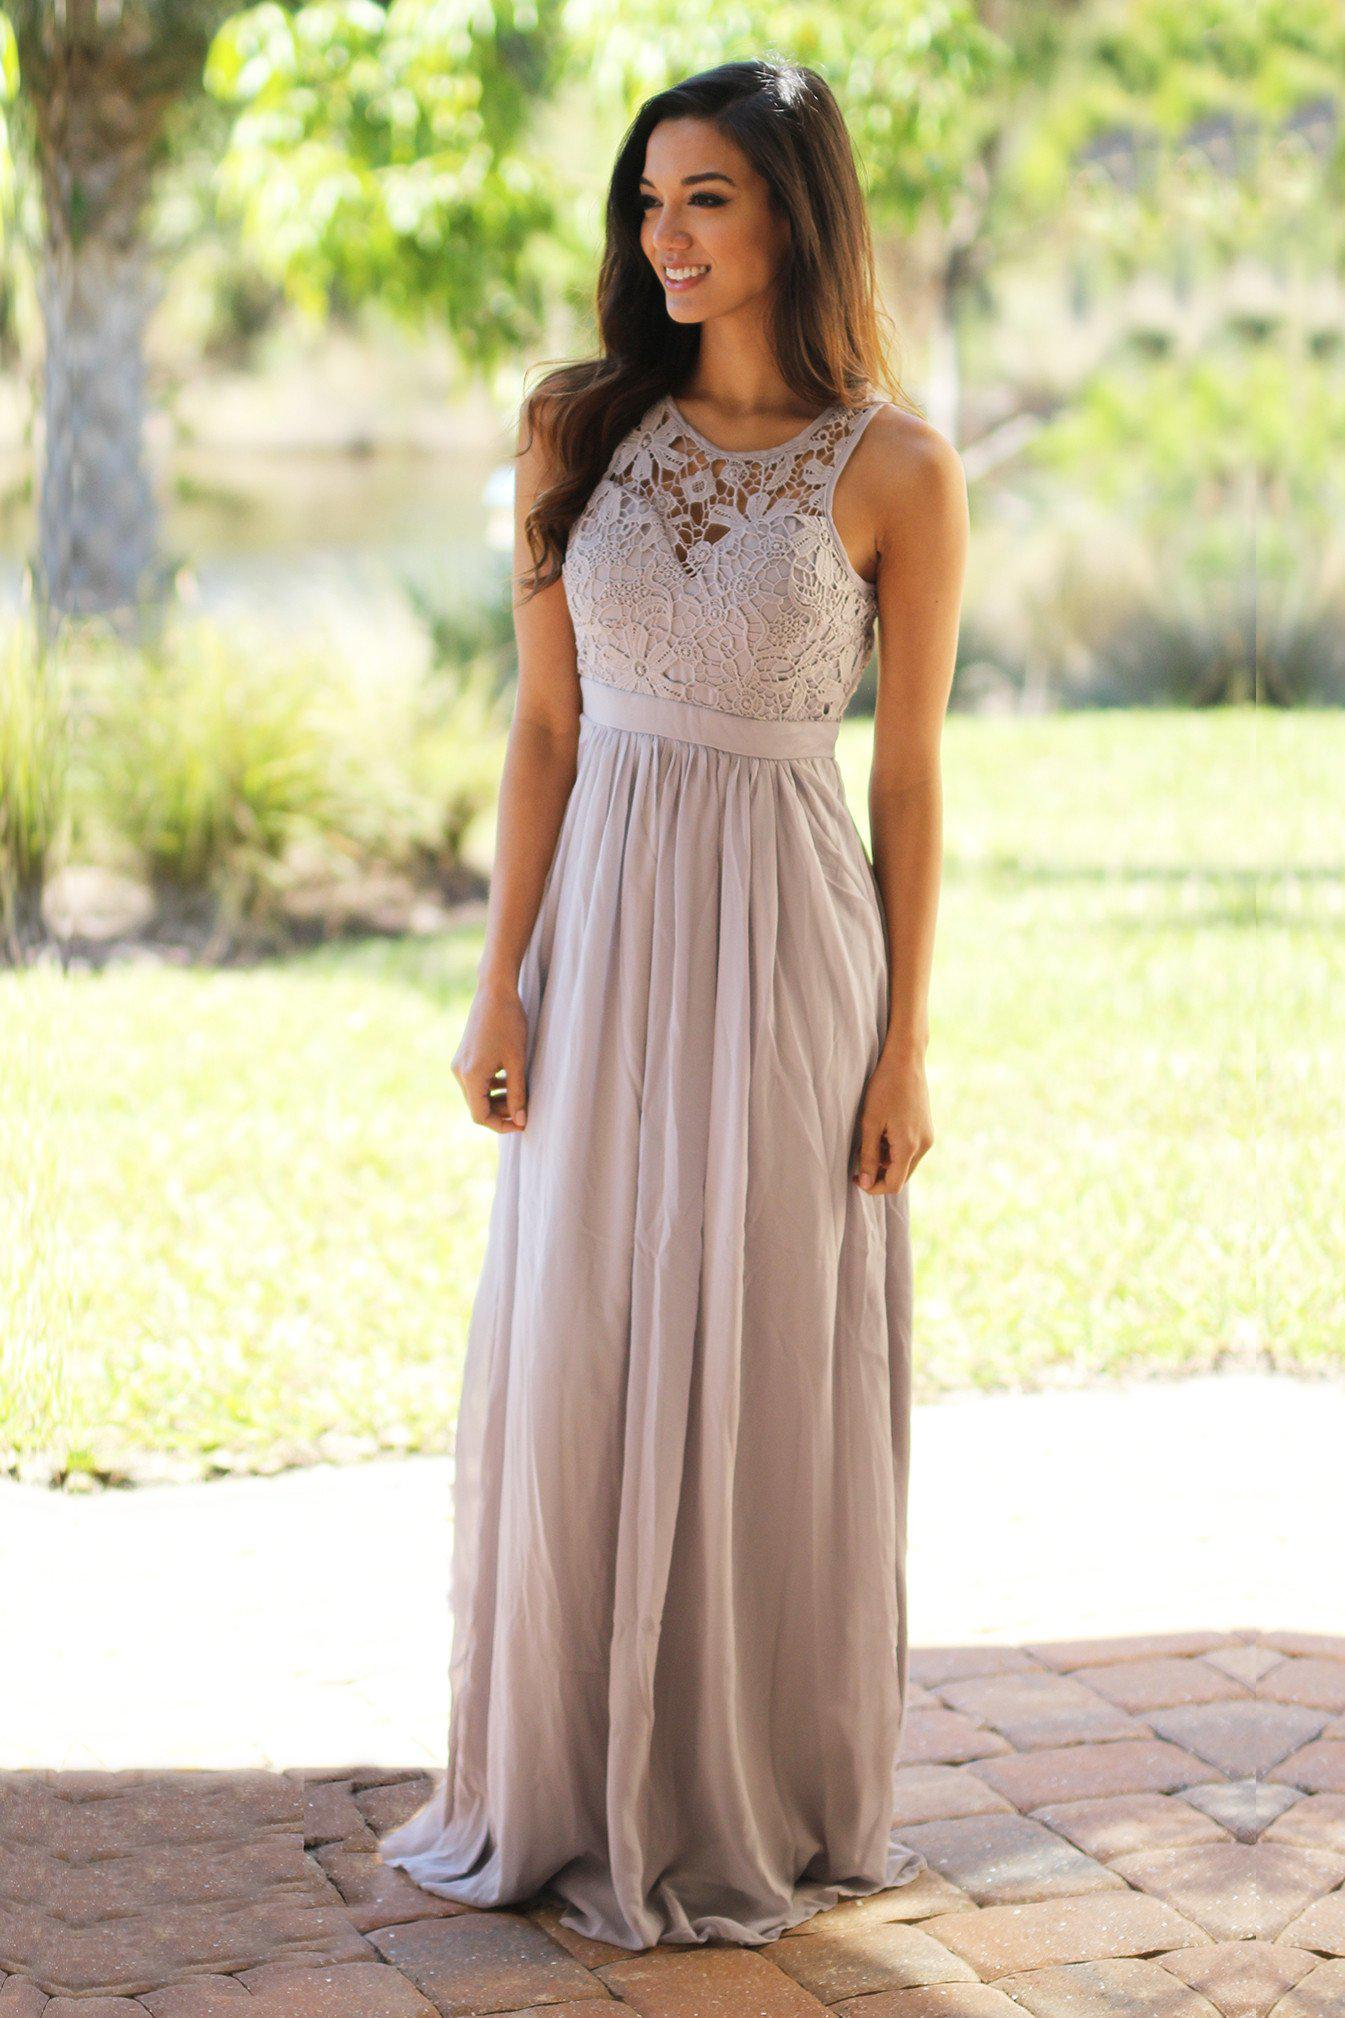 Gray lace maxi dress gray maxi dress bridesmaid dresses gray lace maxi dress cute dresses bridesmaid dresses ombrellifo Image collections